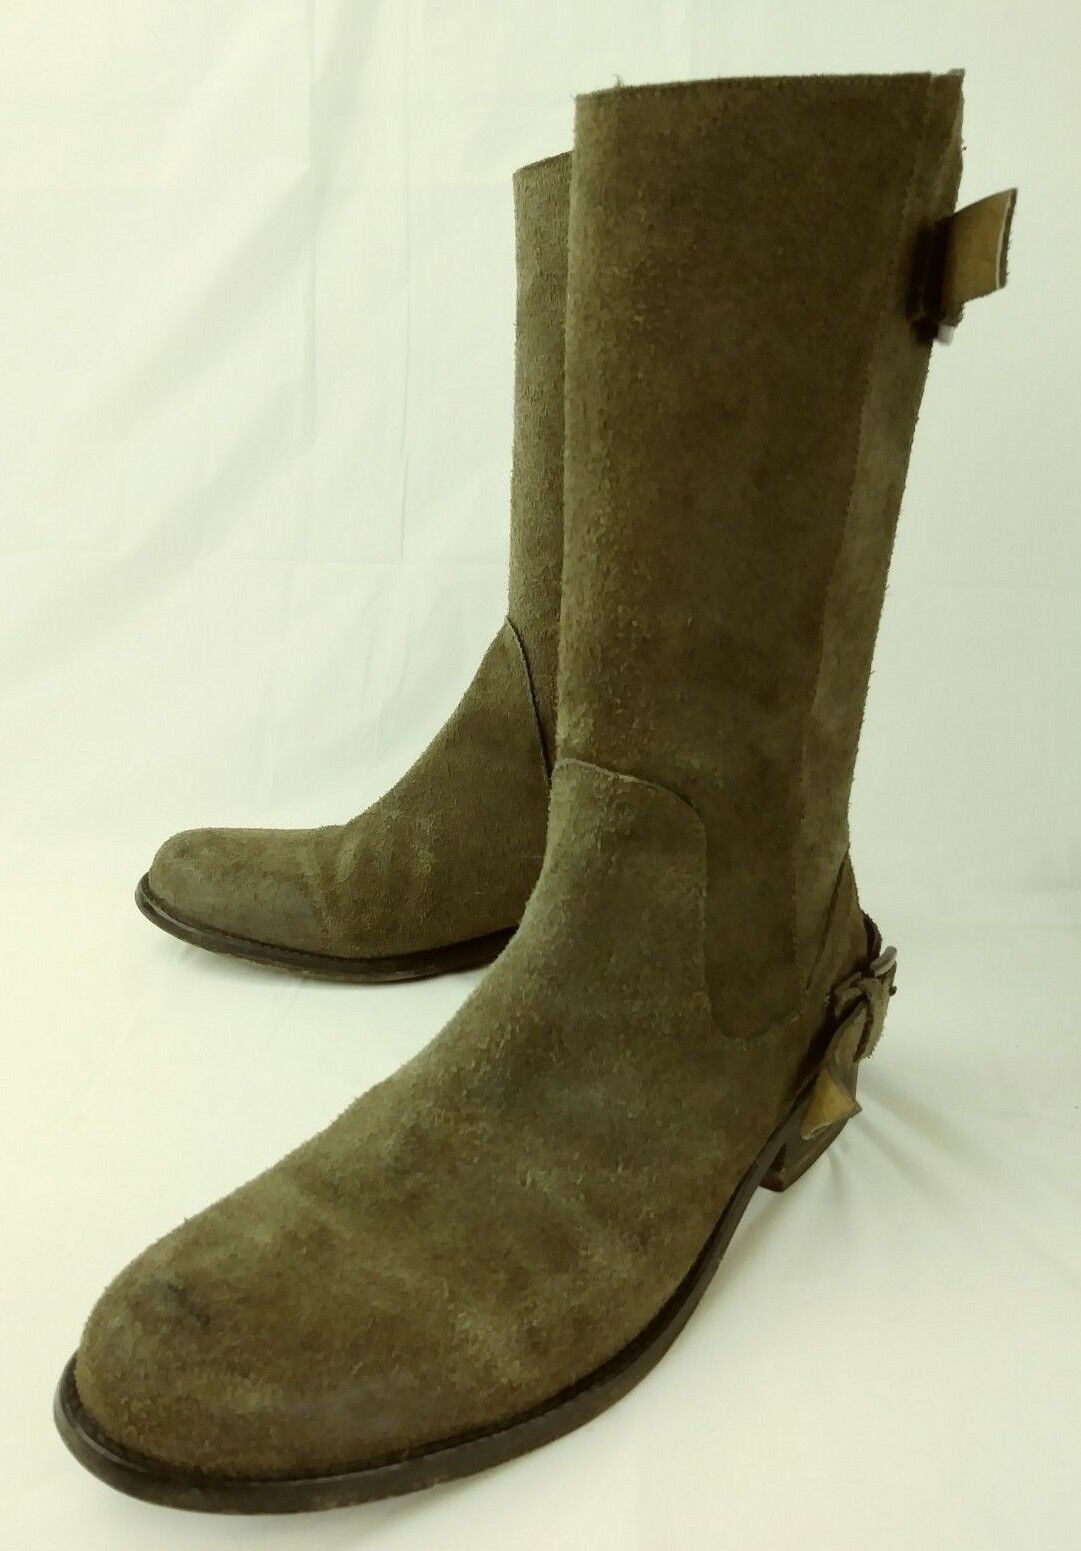 Steve Madden Luxe Wos bottes tall TORY US 8.5M marron Suede Zip Buckle Casual 2837